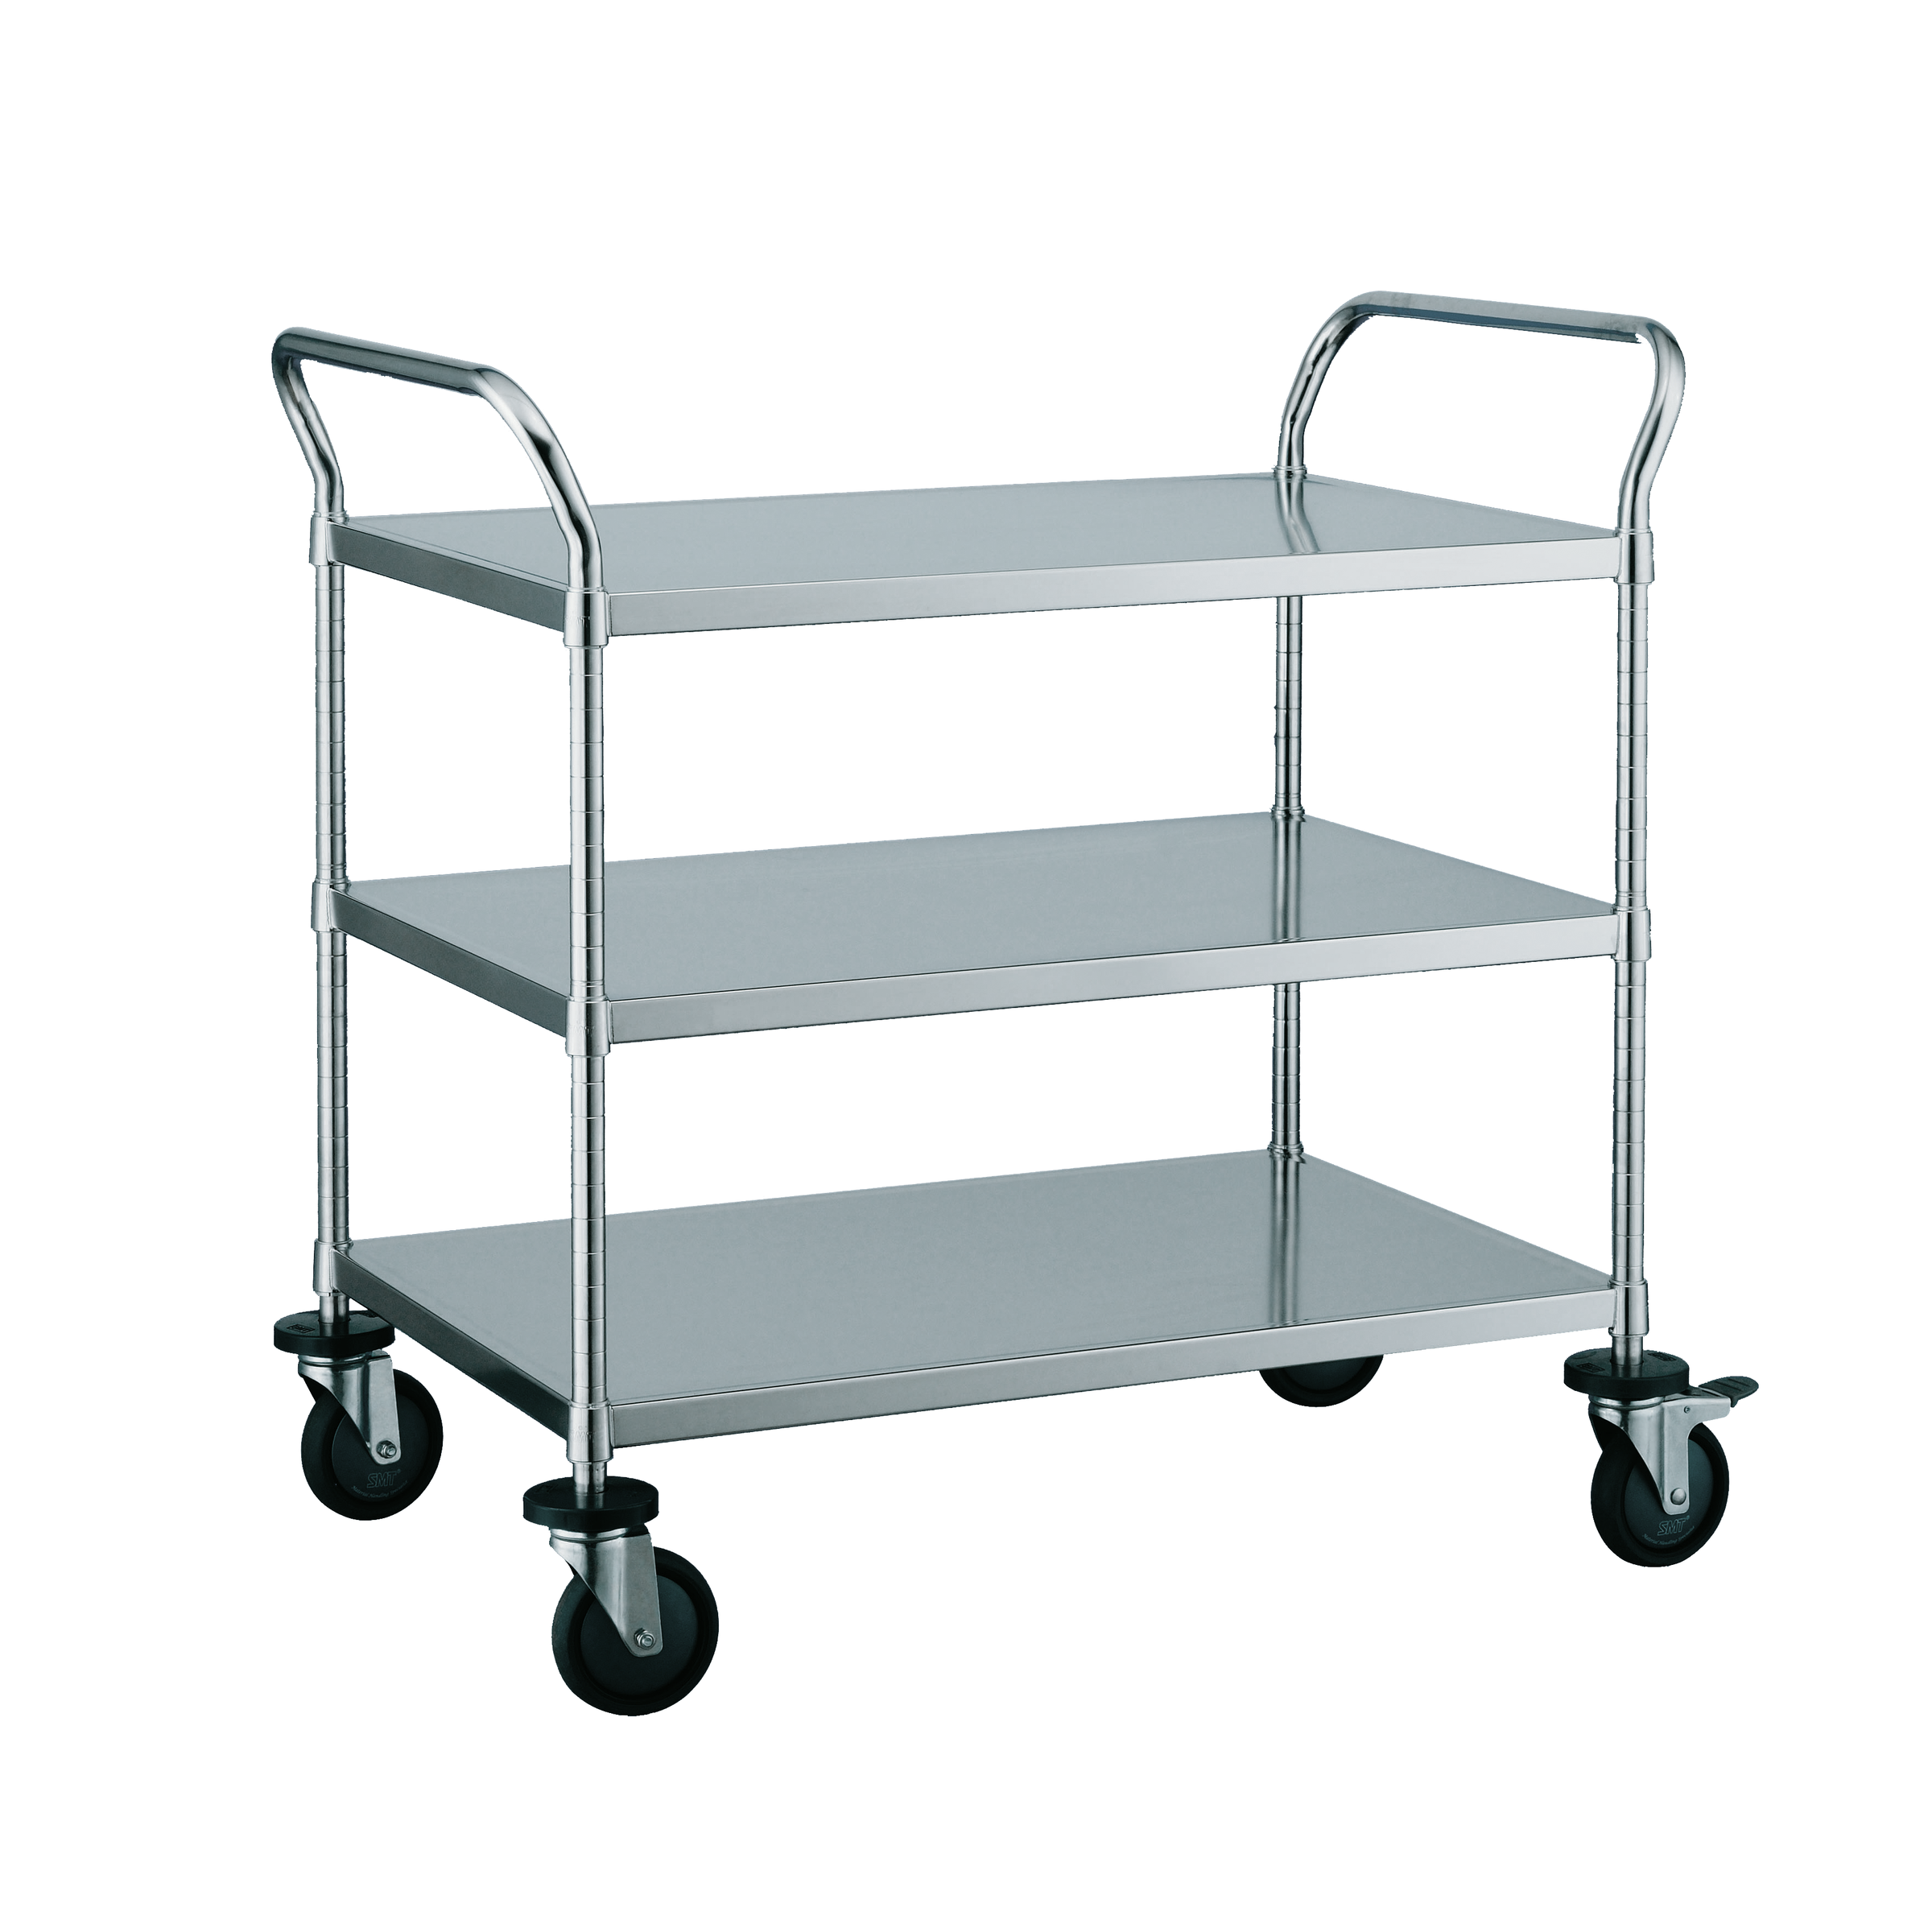 2. Solid Shelf Utility Cart - F3-865.png